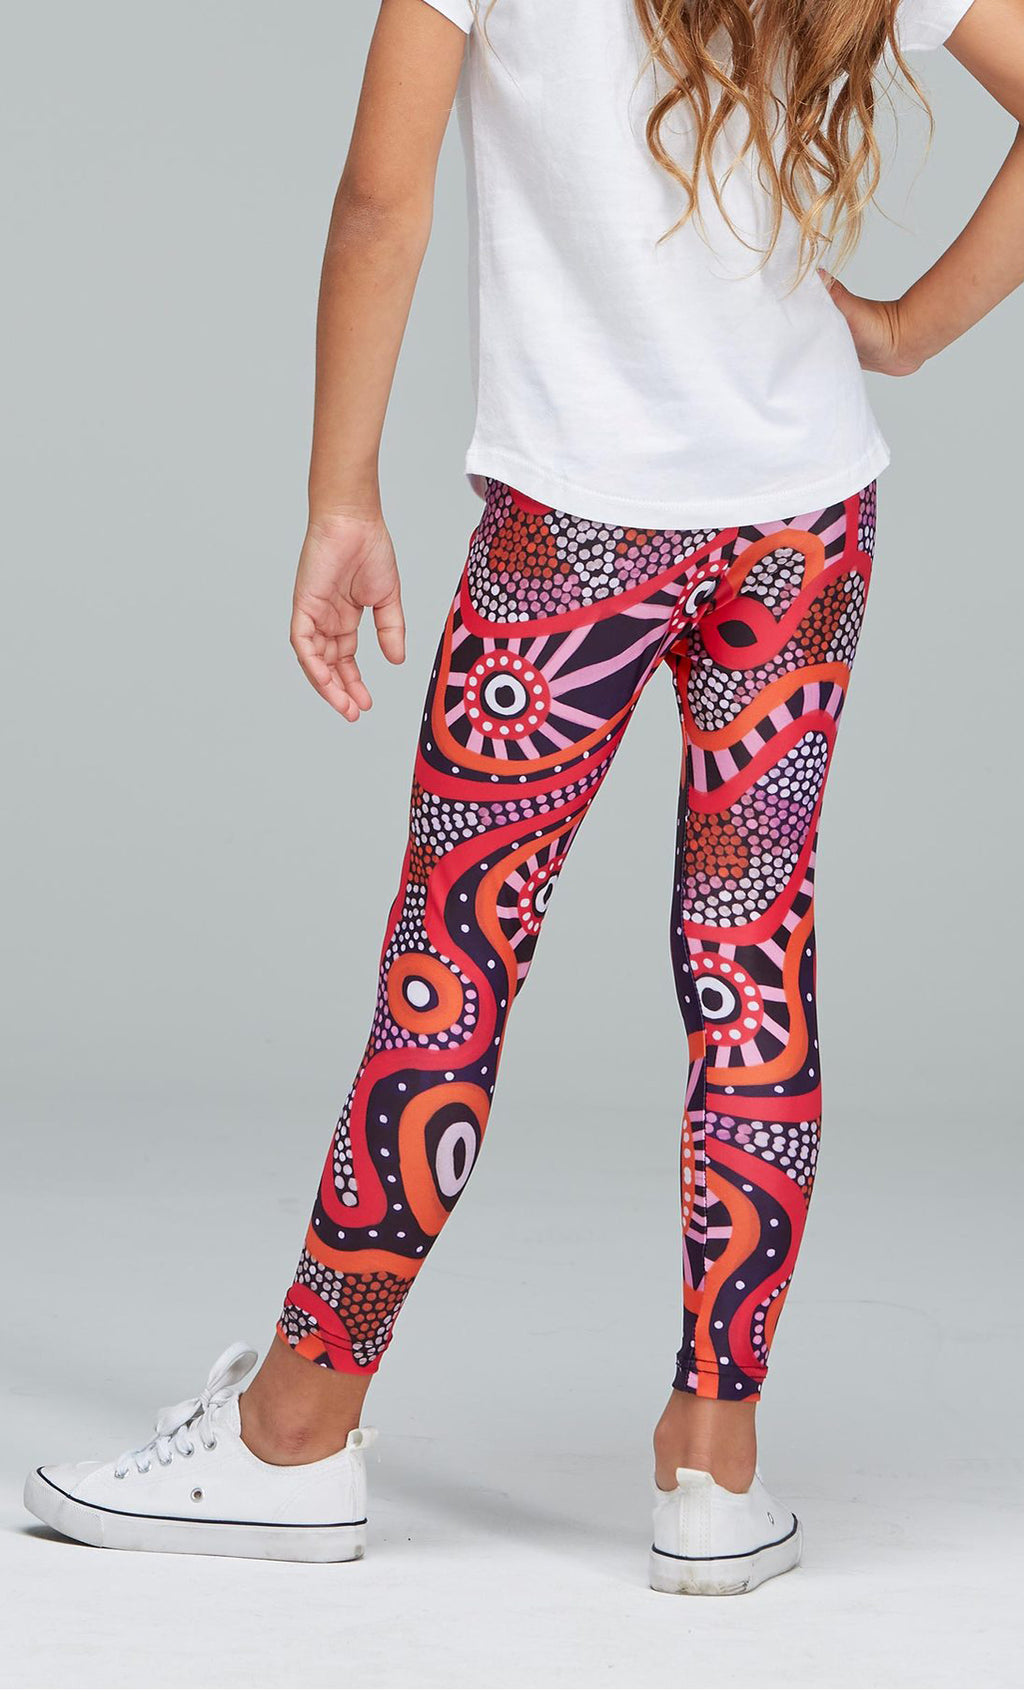 Aboriginal Art Kids Leggings Central Voice